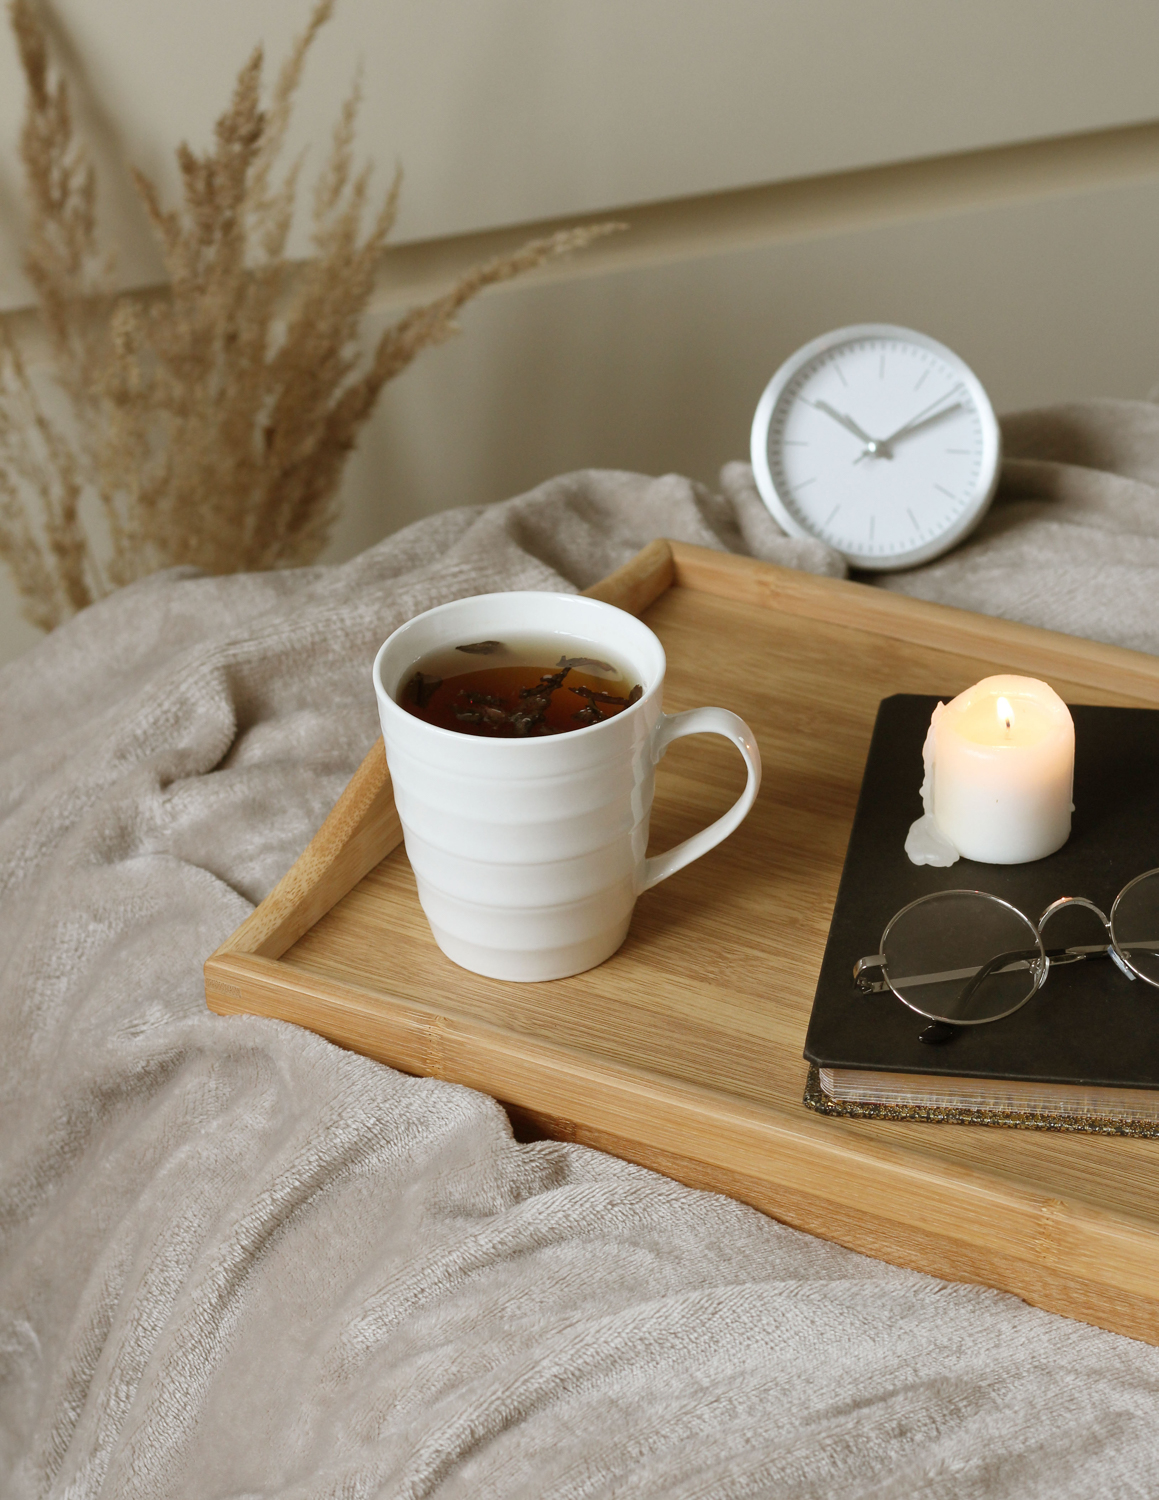 Wooden tray with a cup of tea and decor details on the bed with soft blanket.